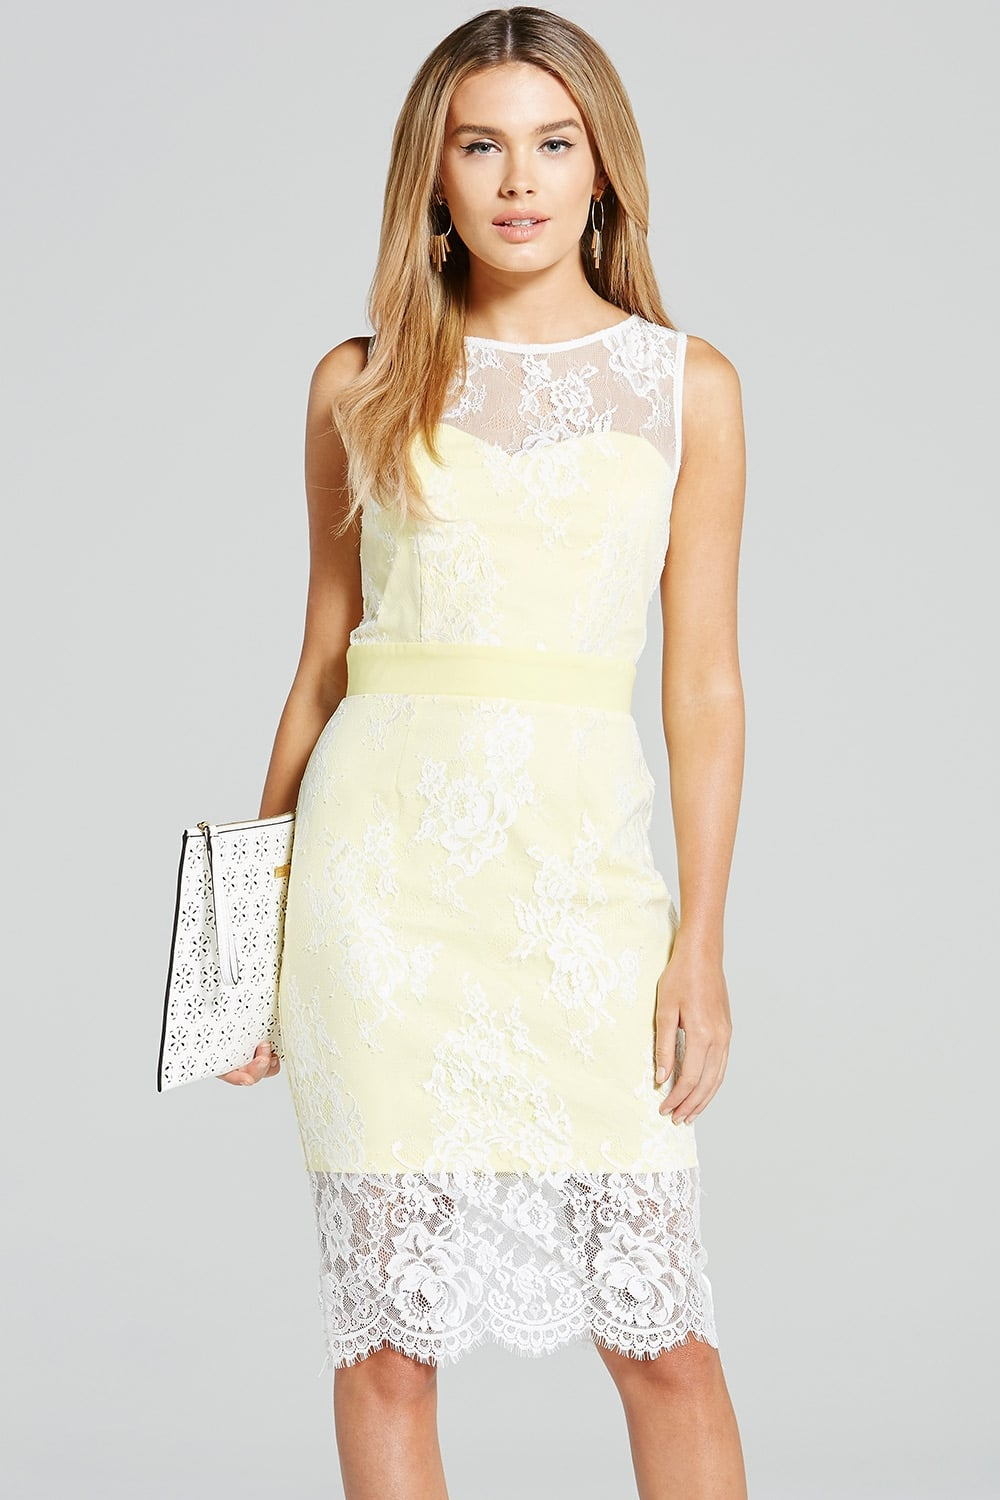 Paper Dolls Lemon and Cream Lace Overlay Dress - Paper Dolls from ...